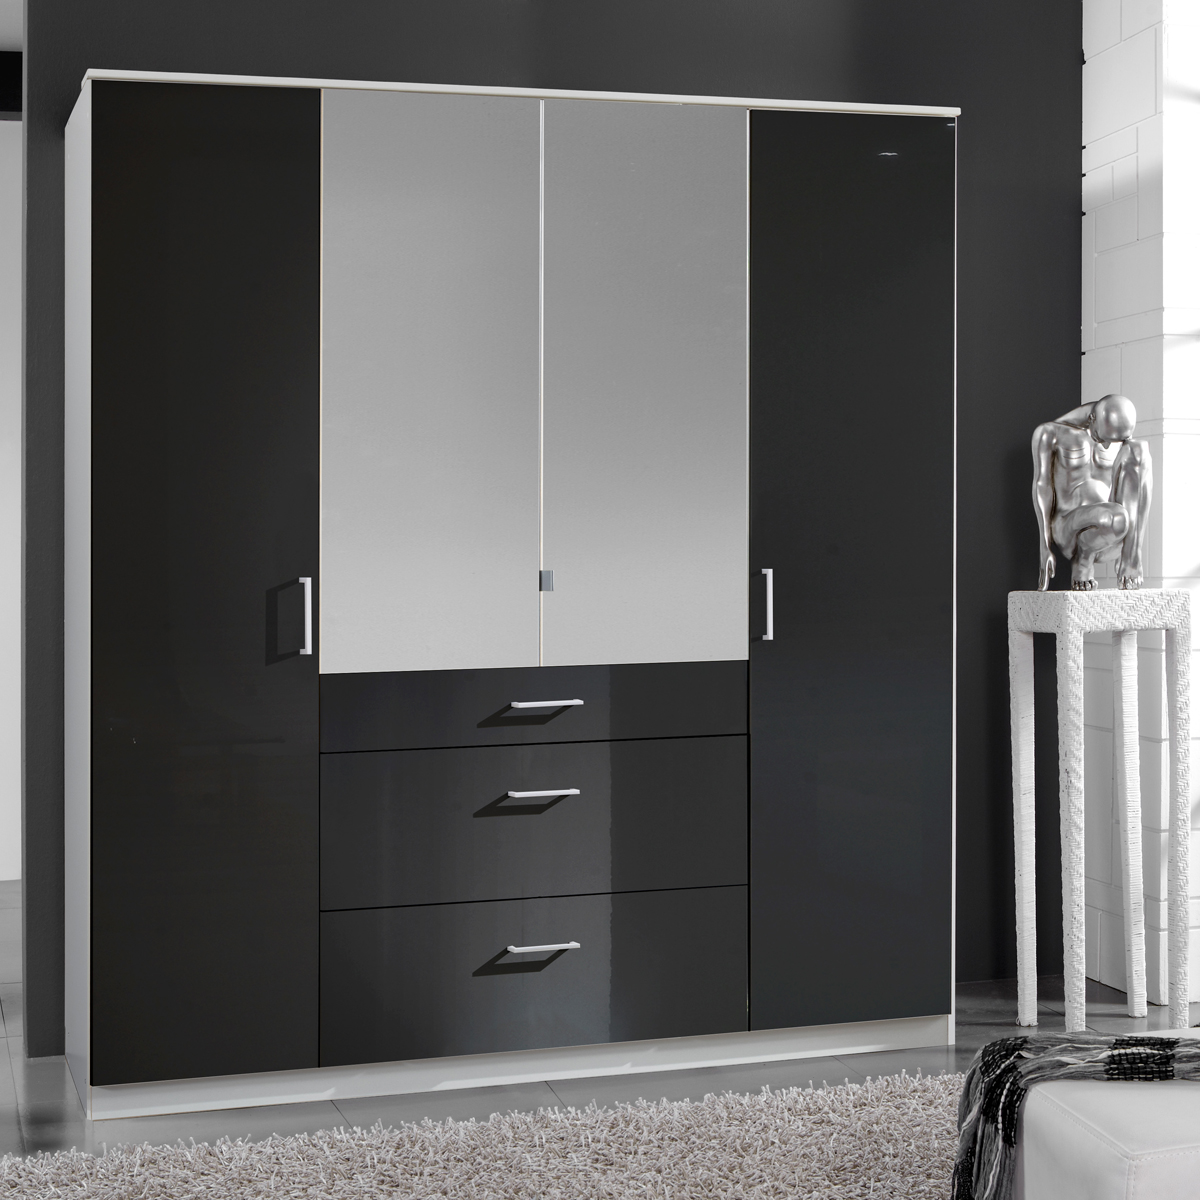 kleiderschrank clack dreht renschrank hochglanz schwarz alpinwei spiegel 180 cm. Black Bedroom Furniture Sets. Home Design Ideas